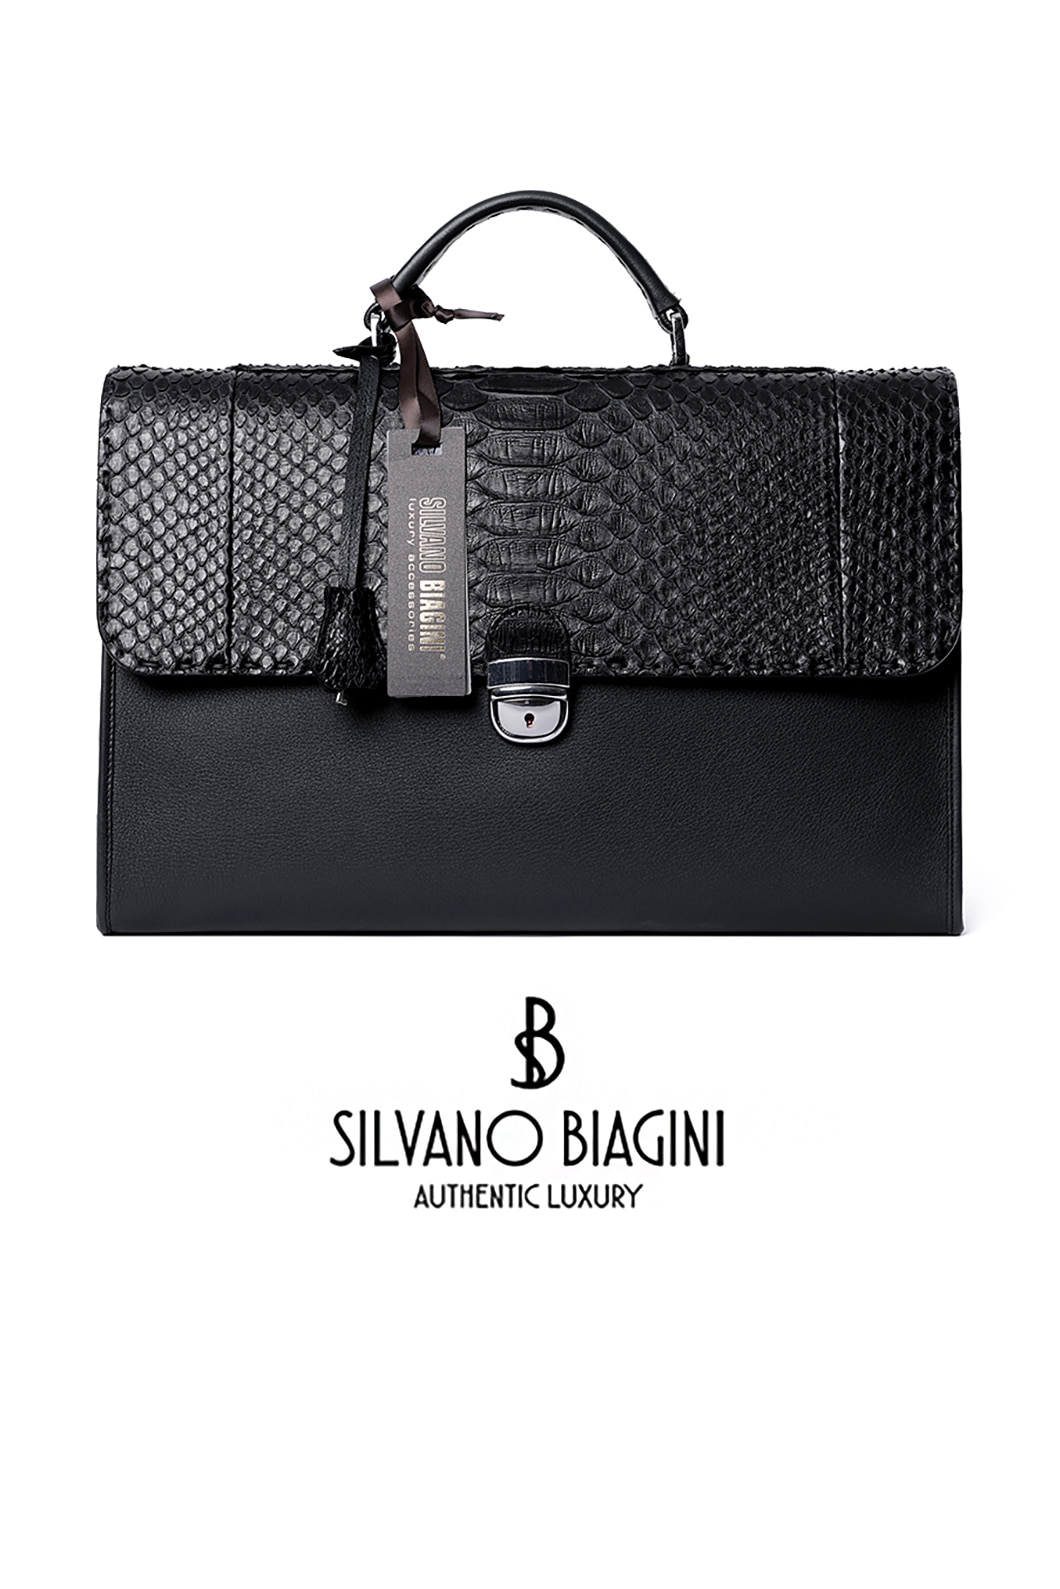 SILVANO BIAGINI PHAETHON BRIEF CASE-BLACK2020소량 재입고완료!